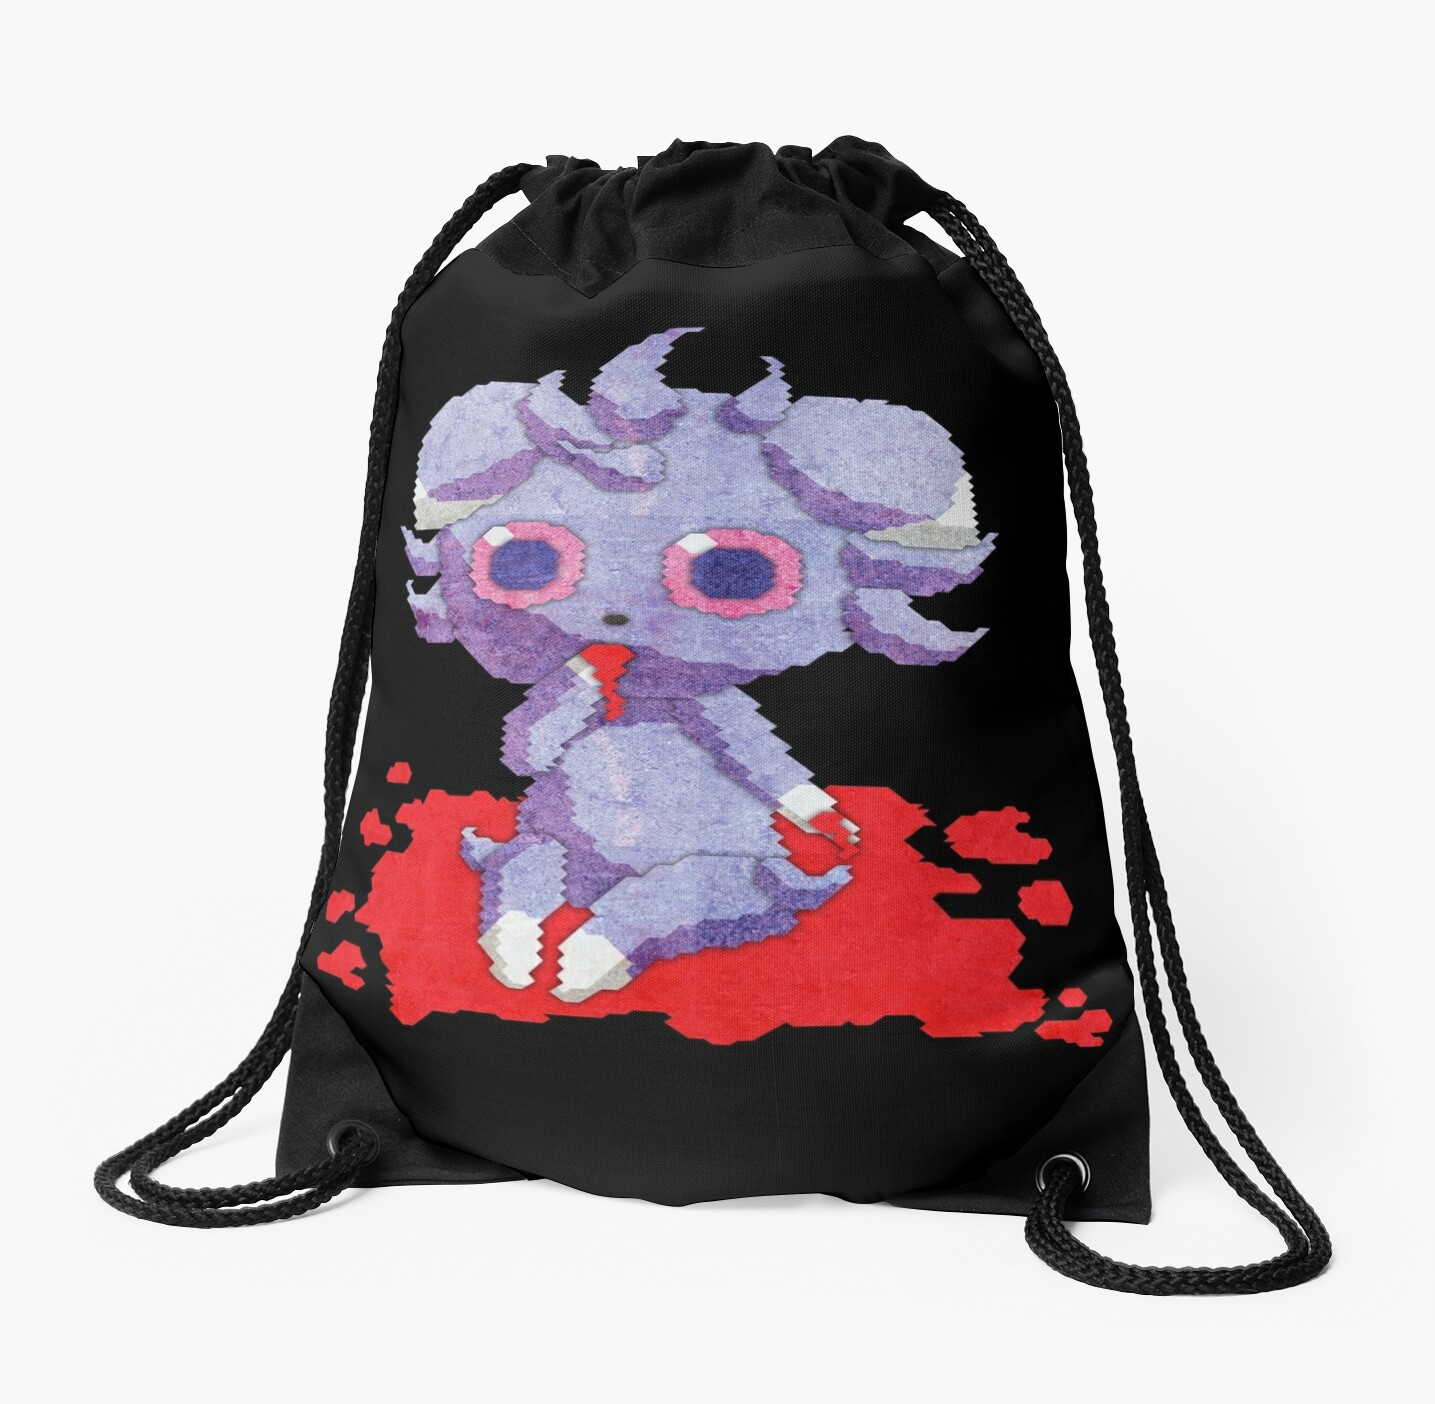 bloody espurr by cavia